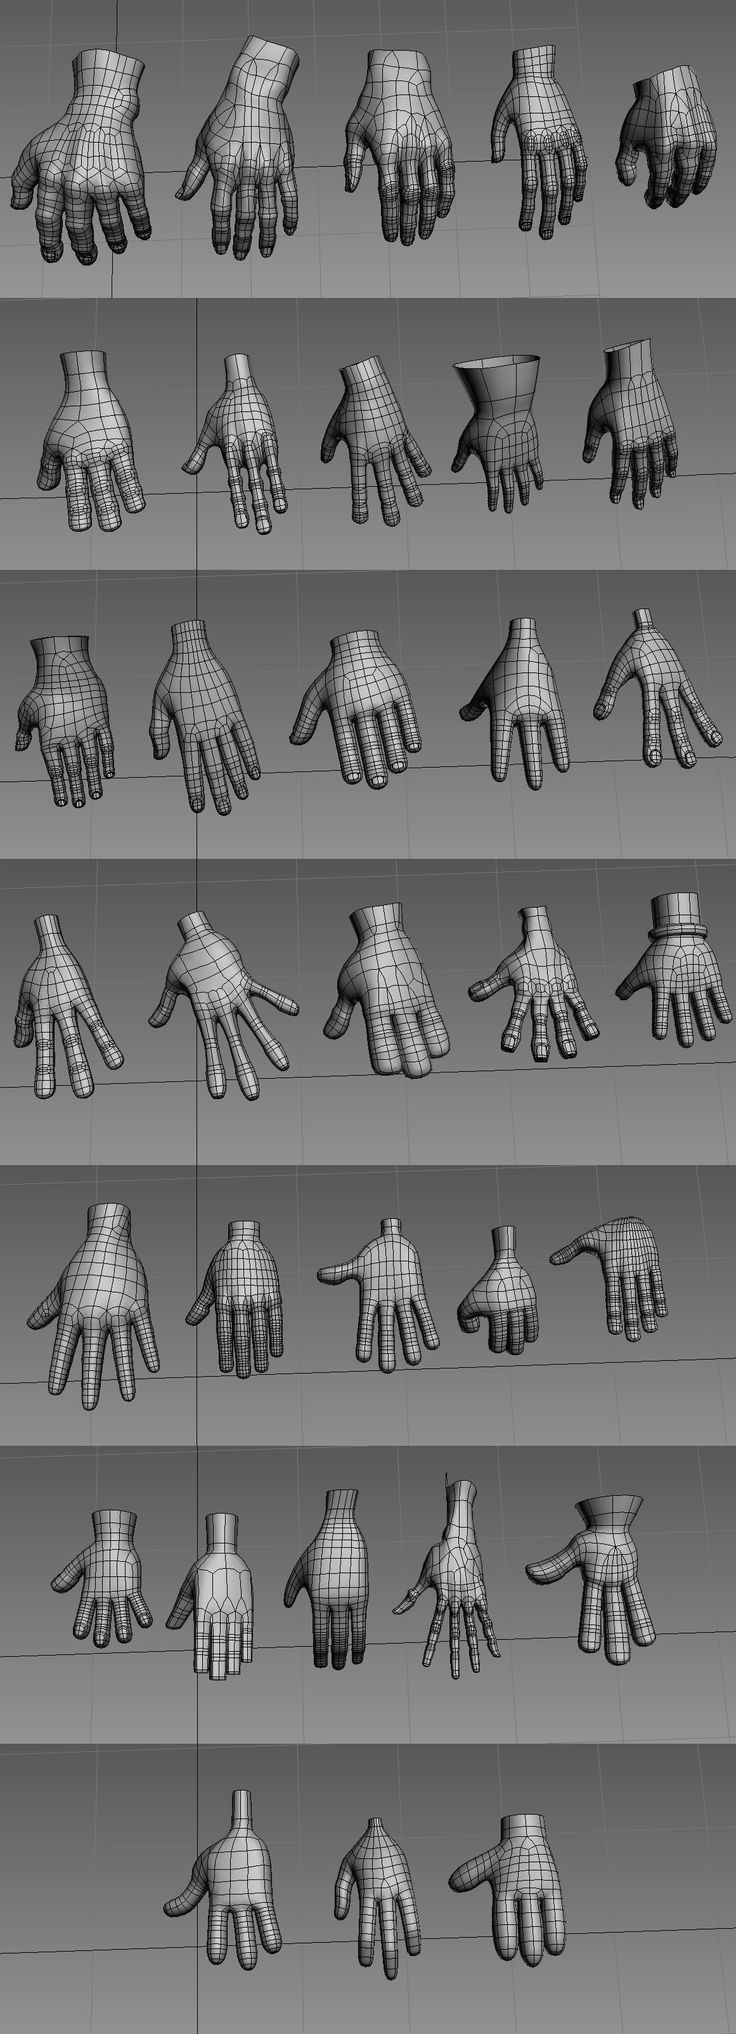 Hand topology